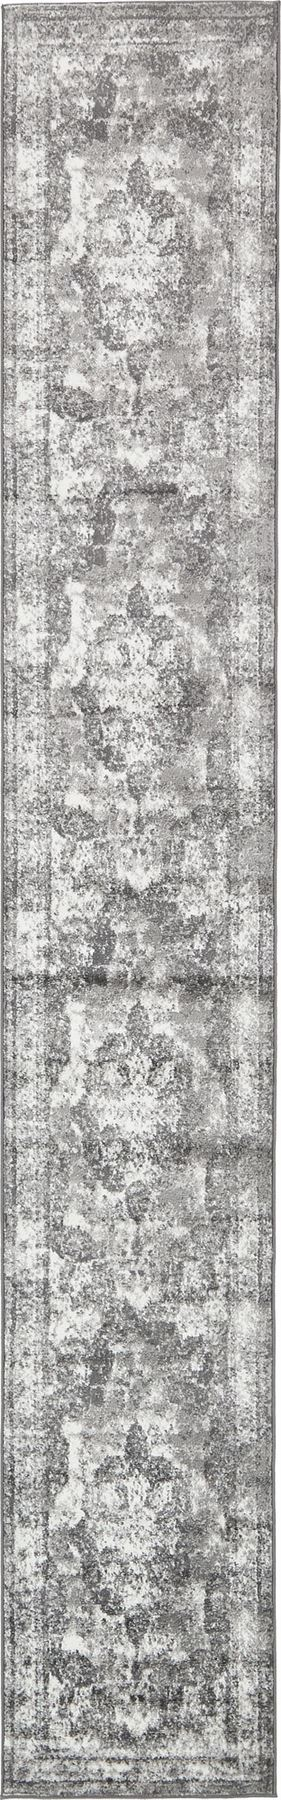 Traditional-Inspired-Persian-Faded-Transitional-Area-Rug-Multi-Color-ALL-SIZES thumbnail 23